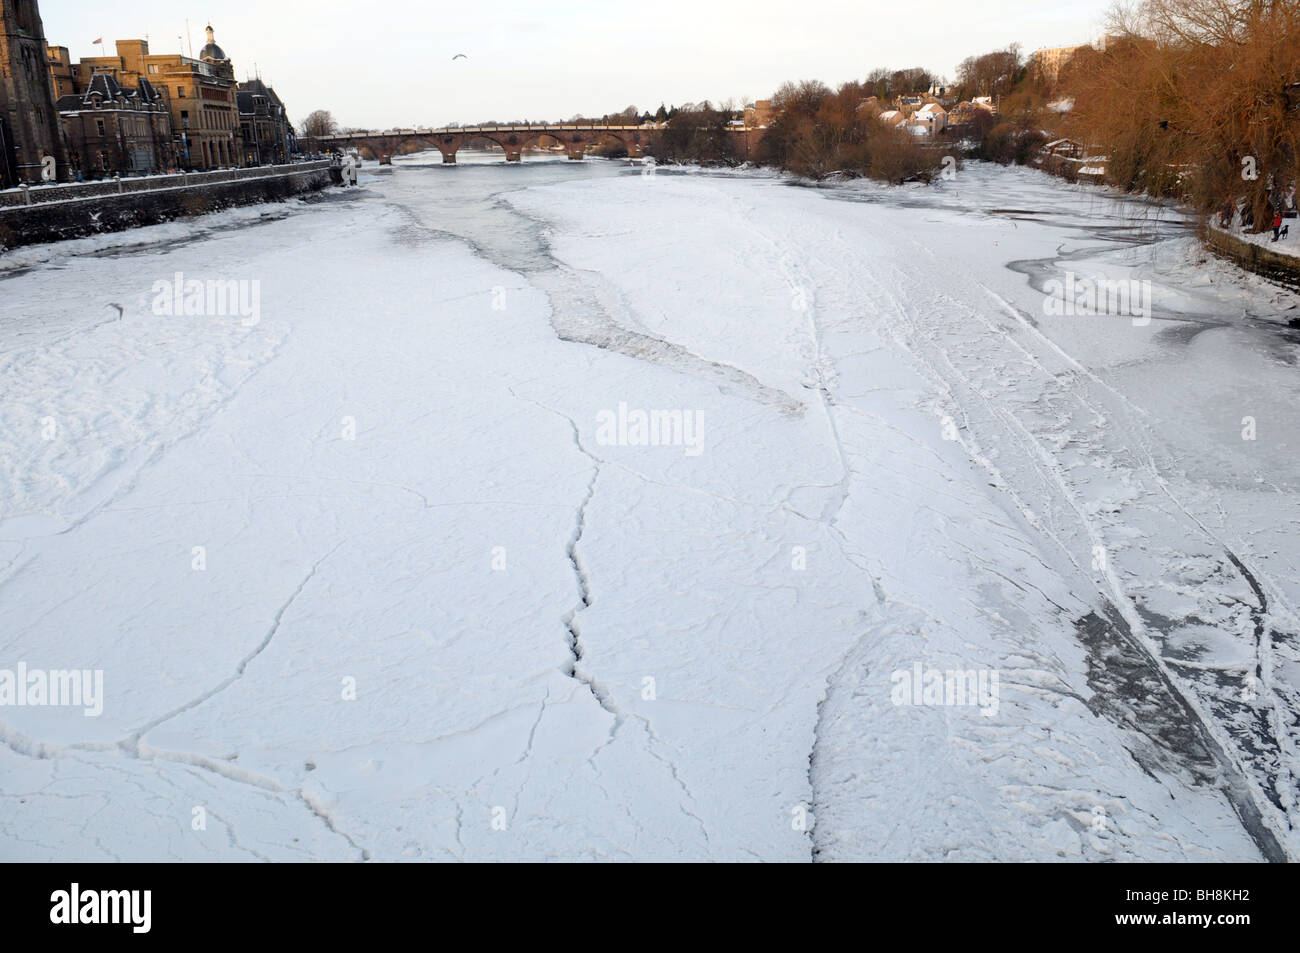 The River Tay freezes over. - Stock Image